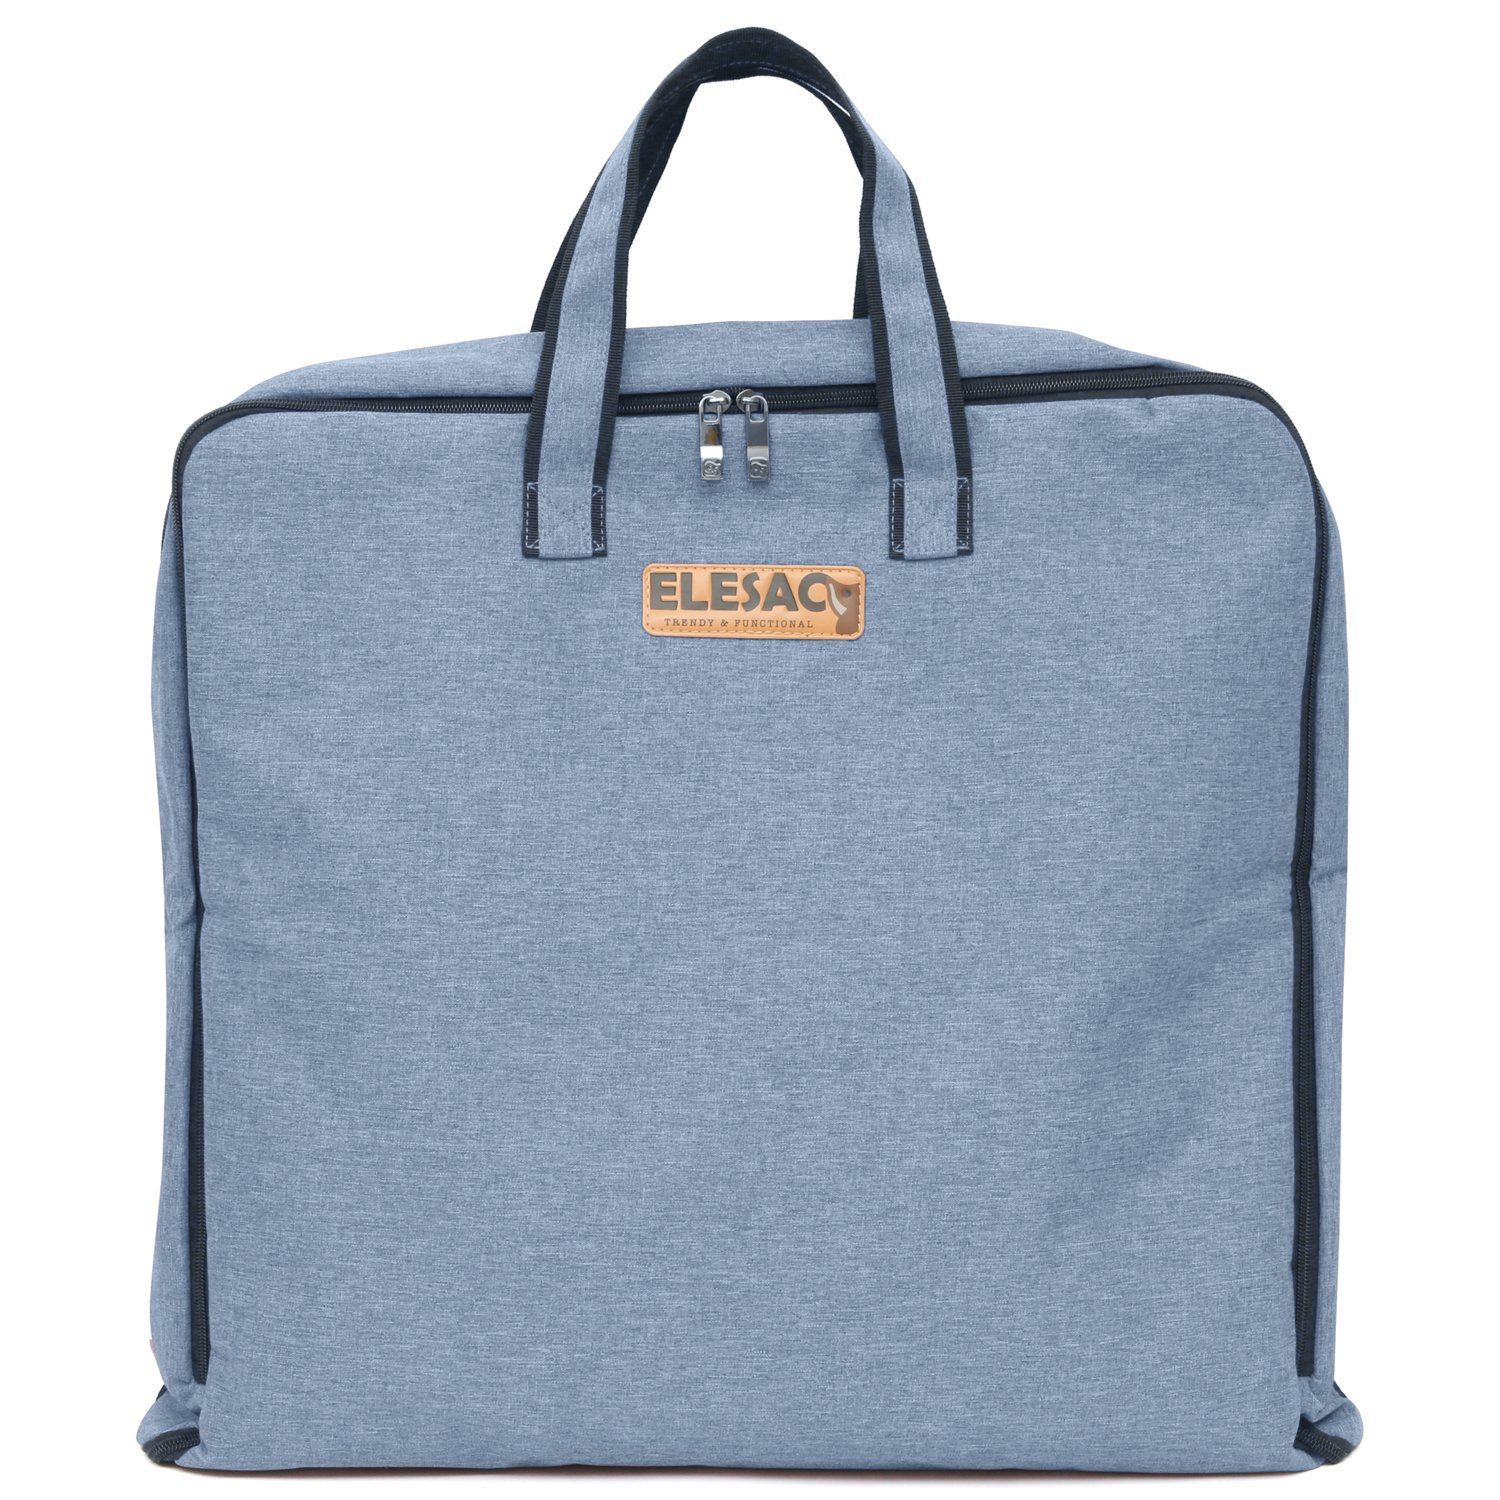 ELESAC Foldable Garment Bag,Clothing Suit Dance w/Pockets,for Business Travel